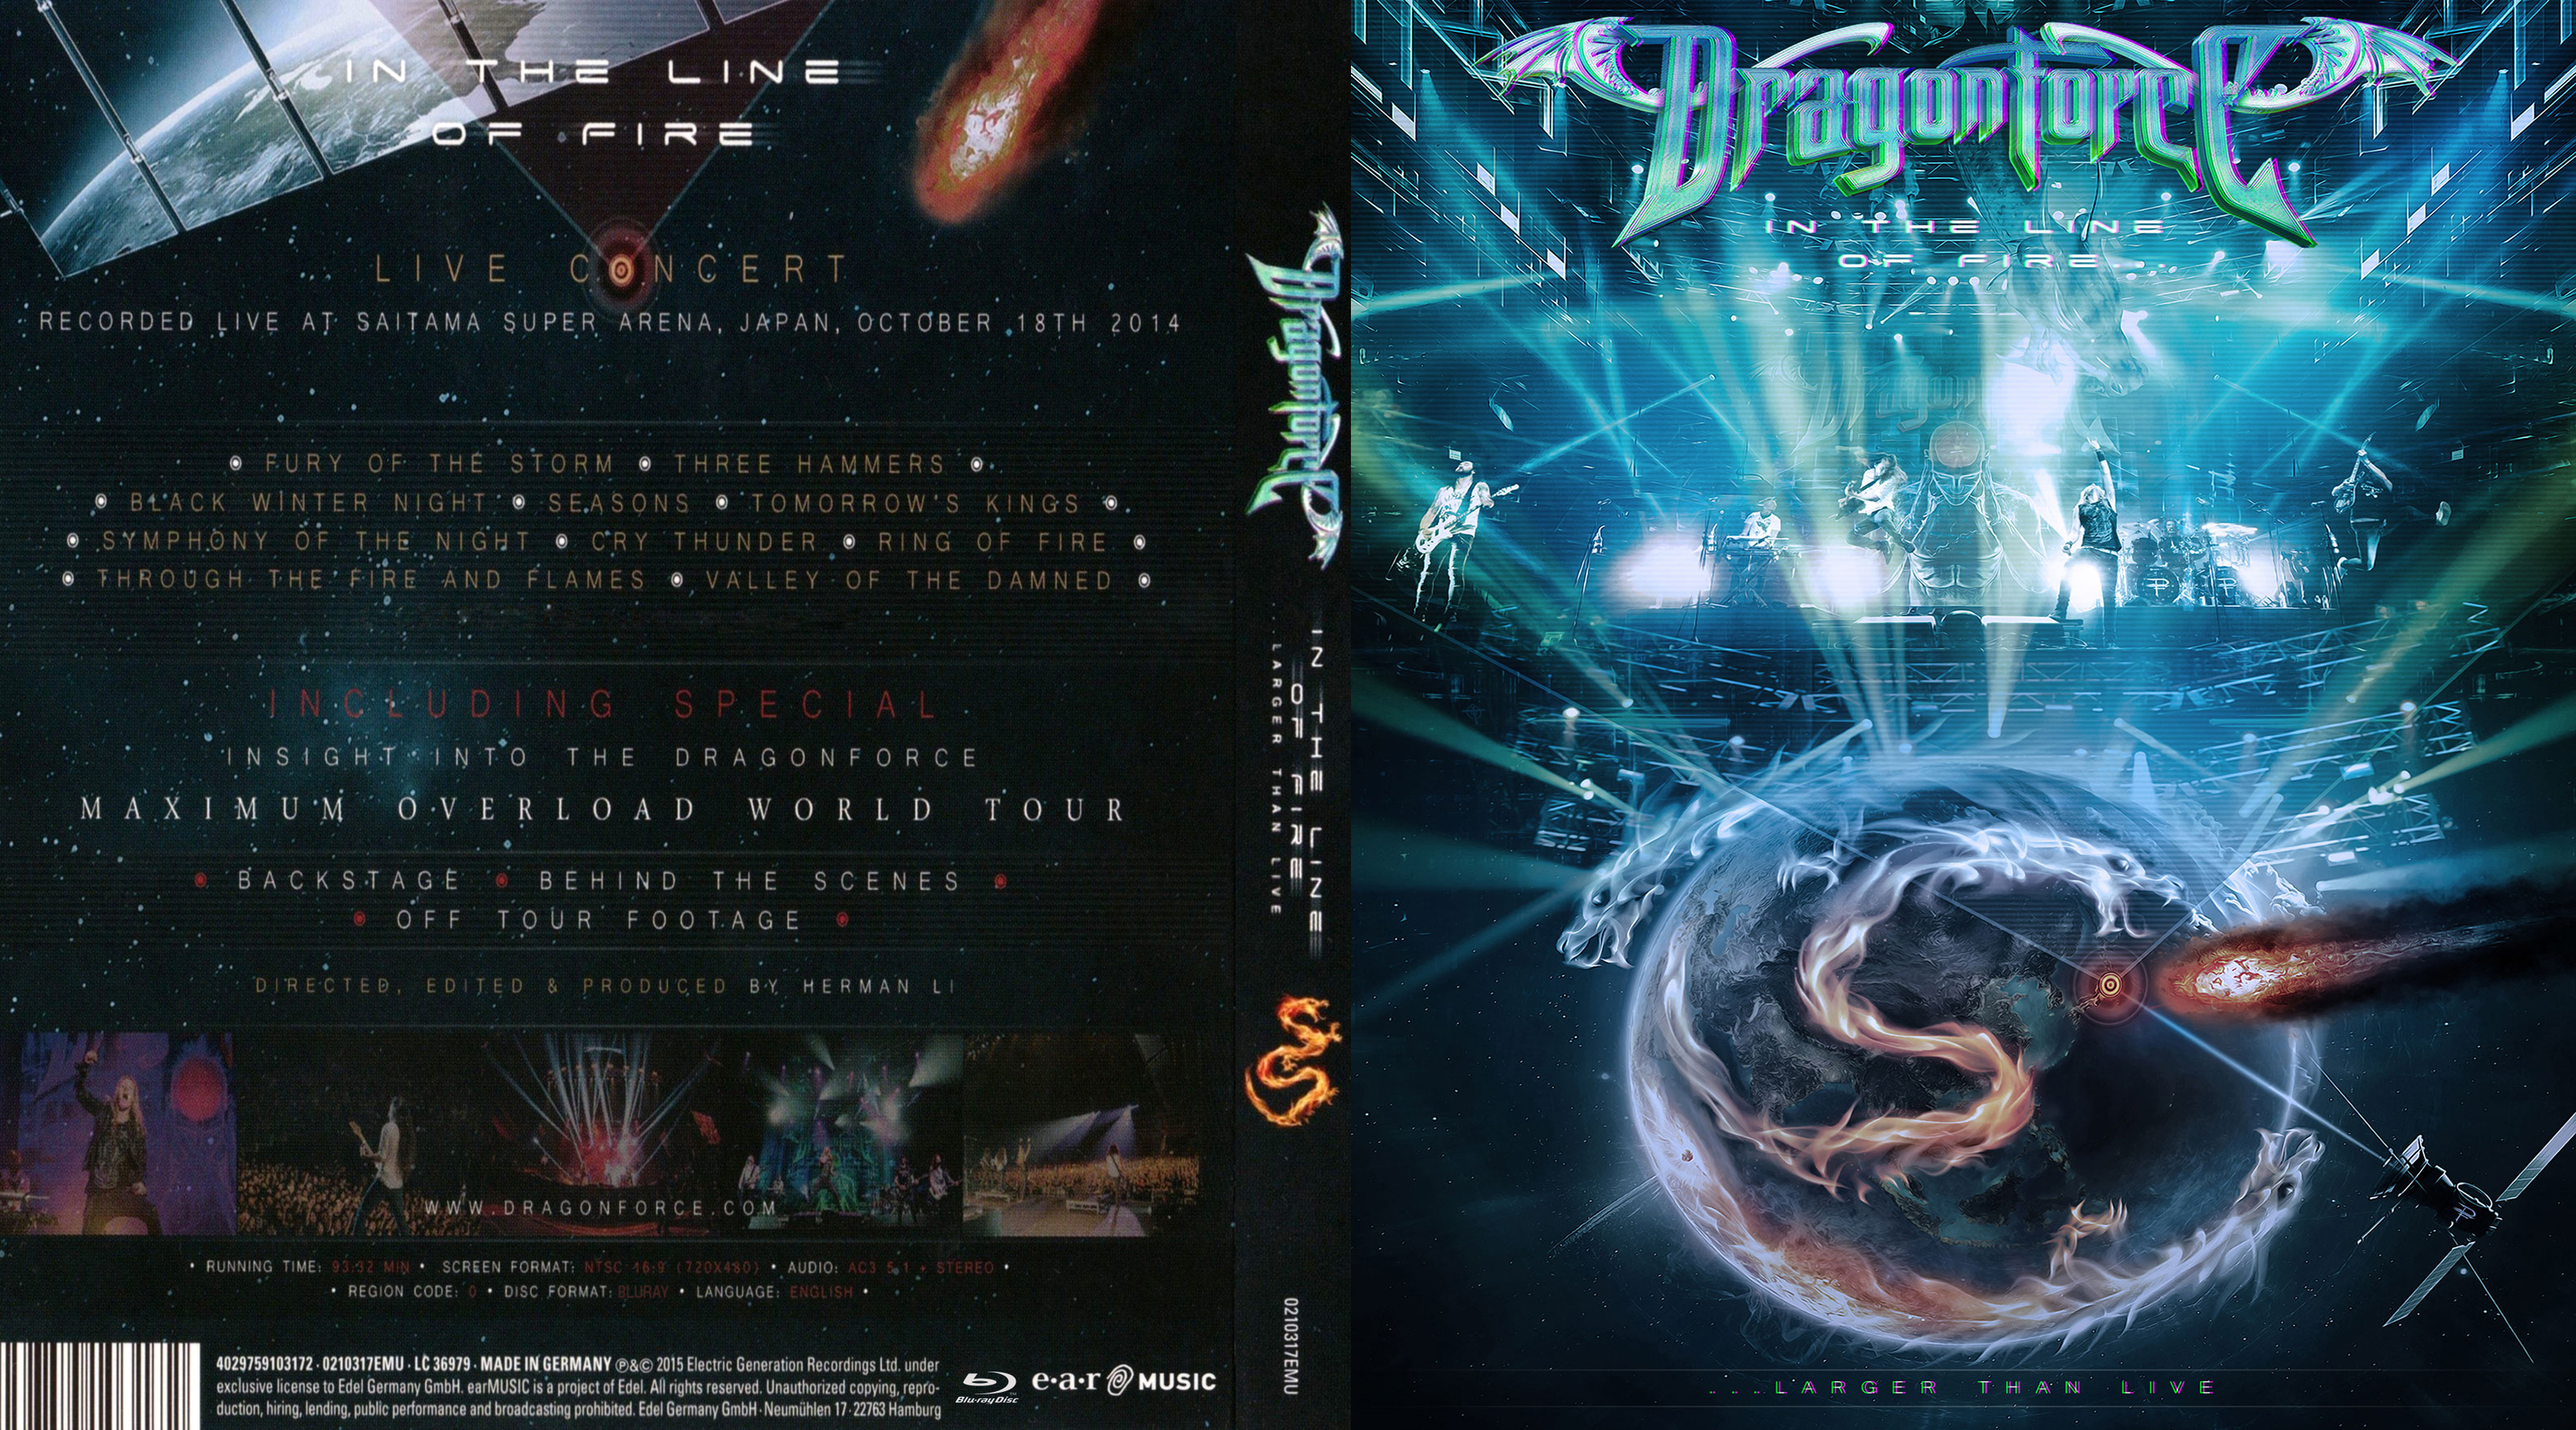 Dragonforce - In The Line Of Fire Blu Ray